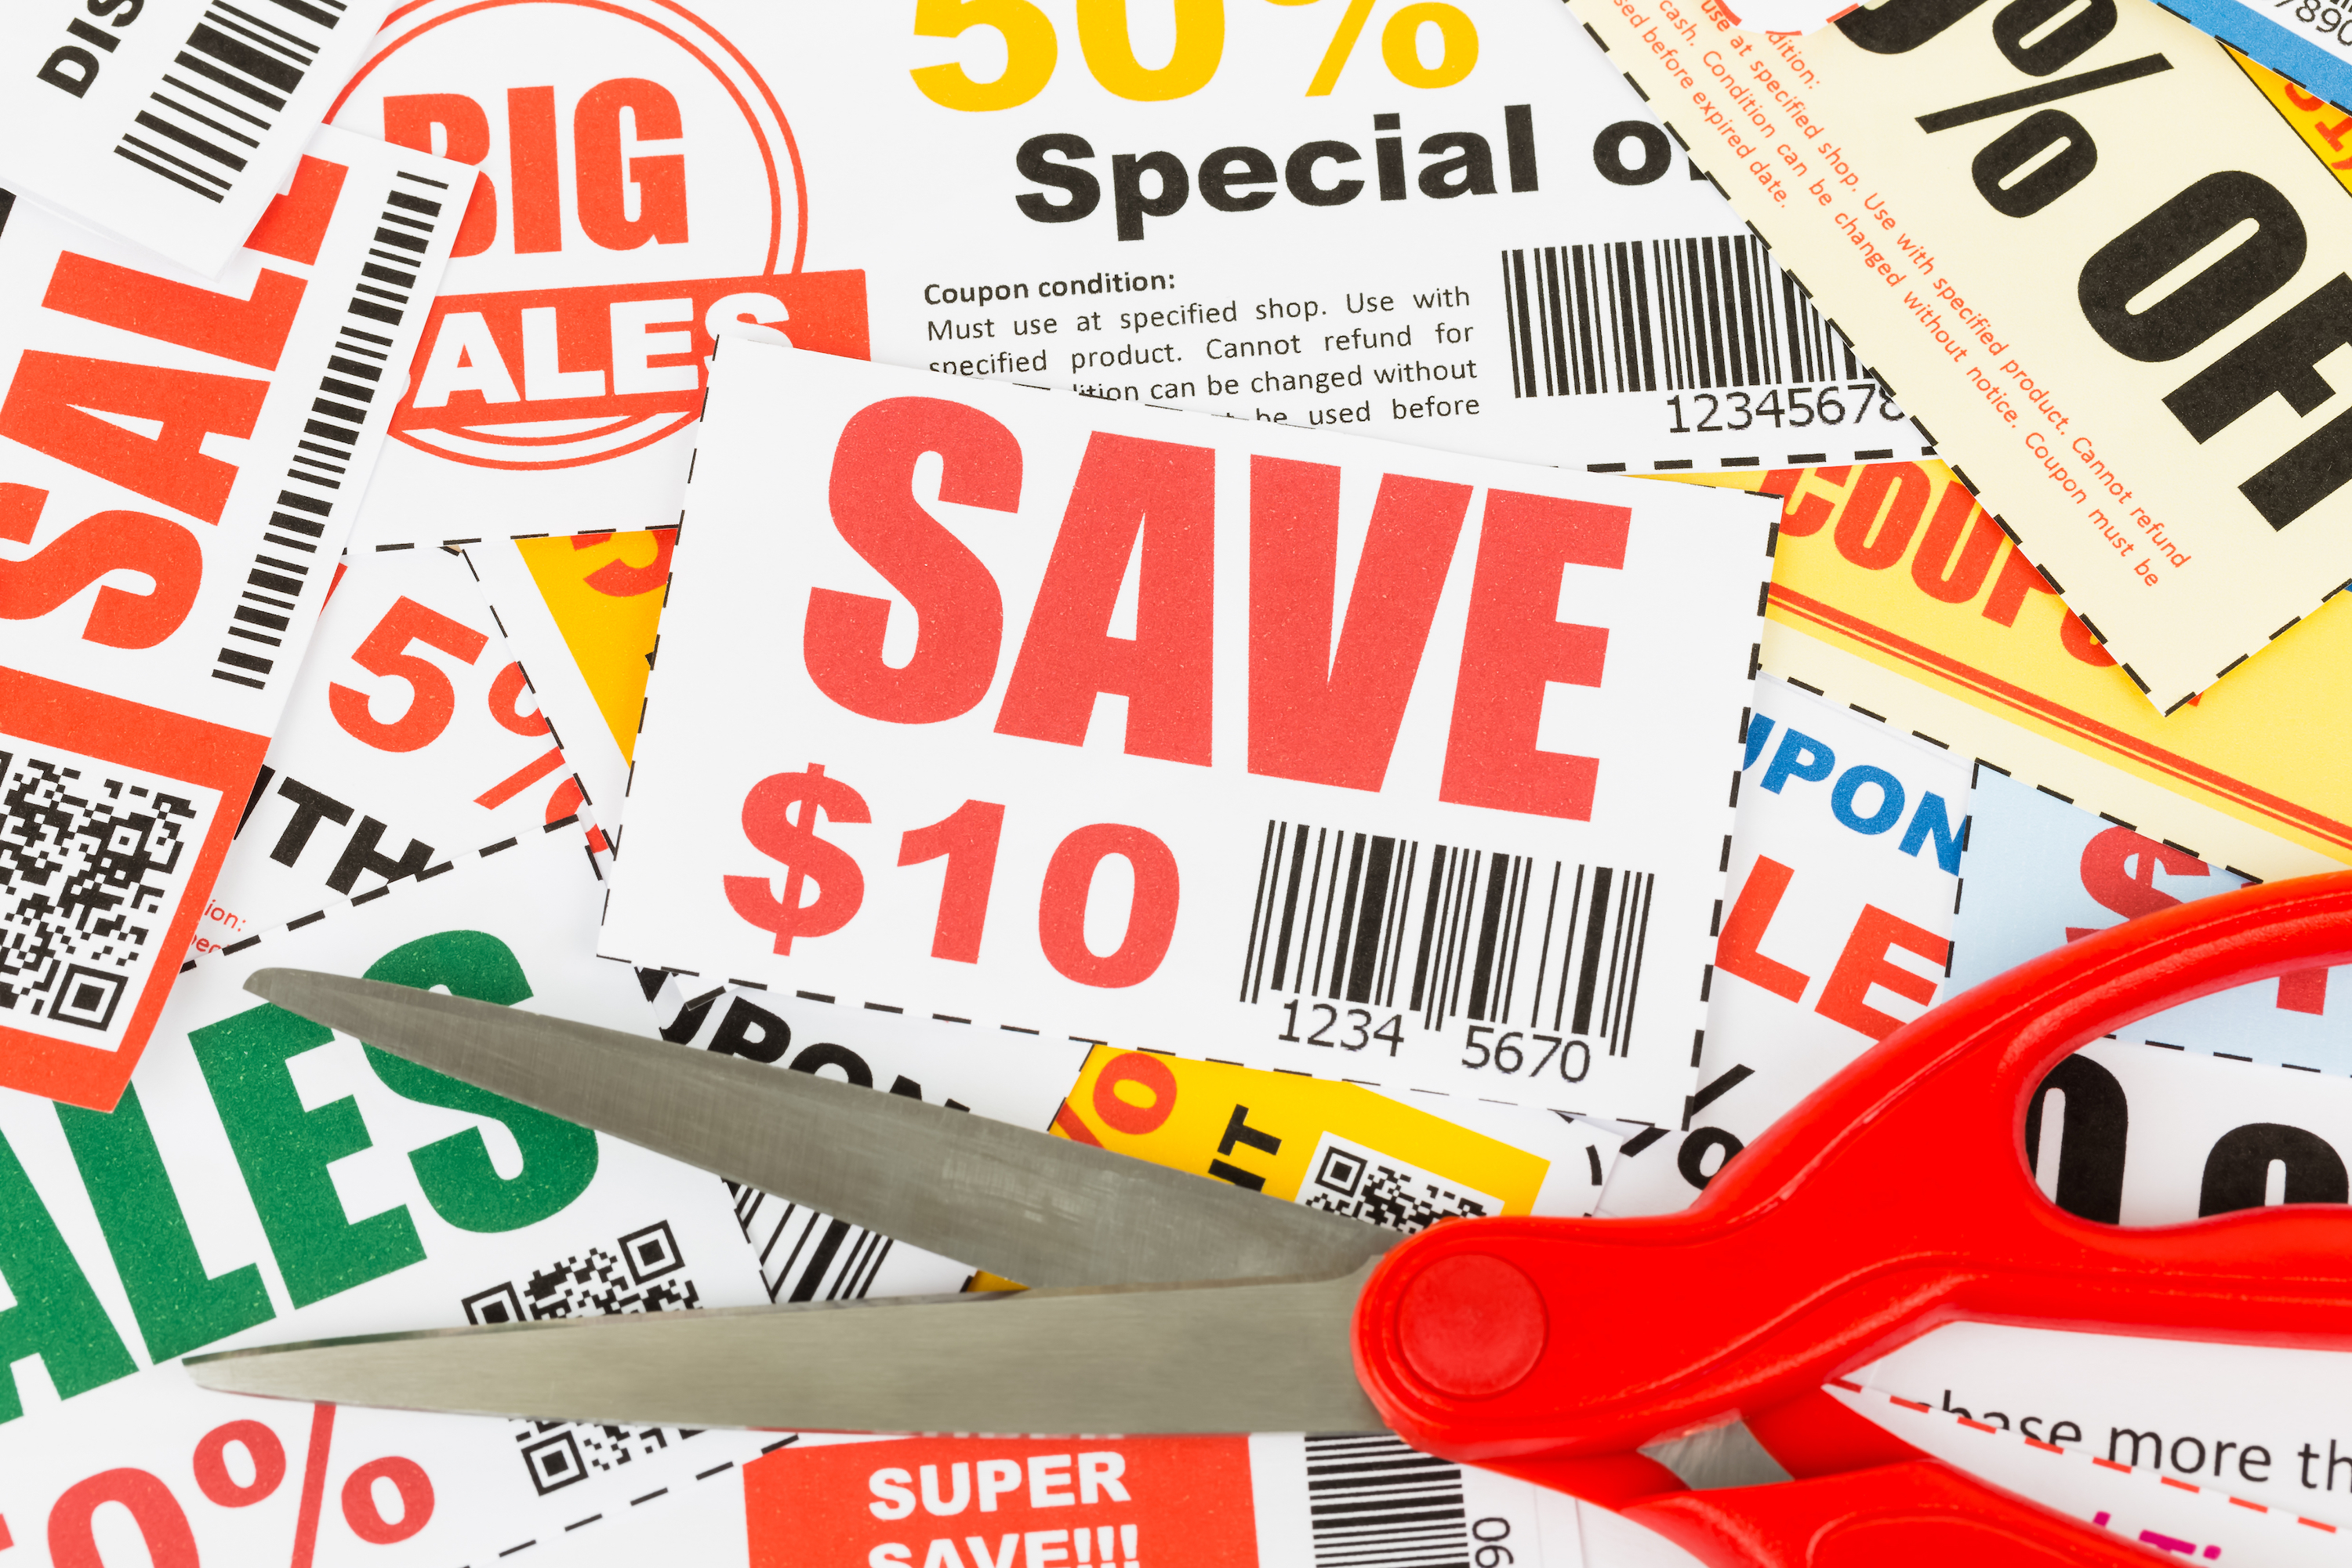 Effectively Using Promotional Links And Discounted Codes